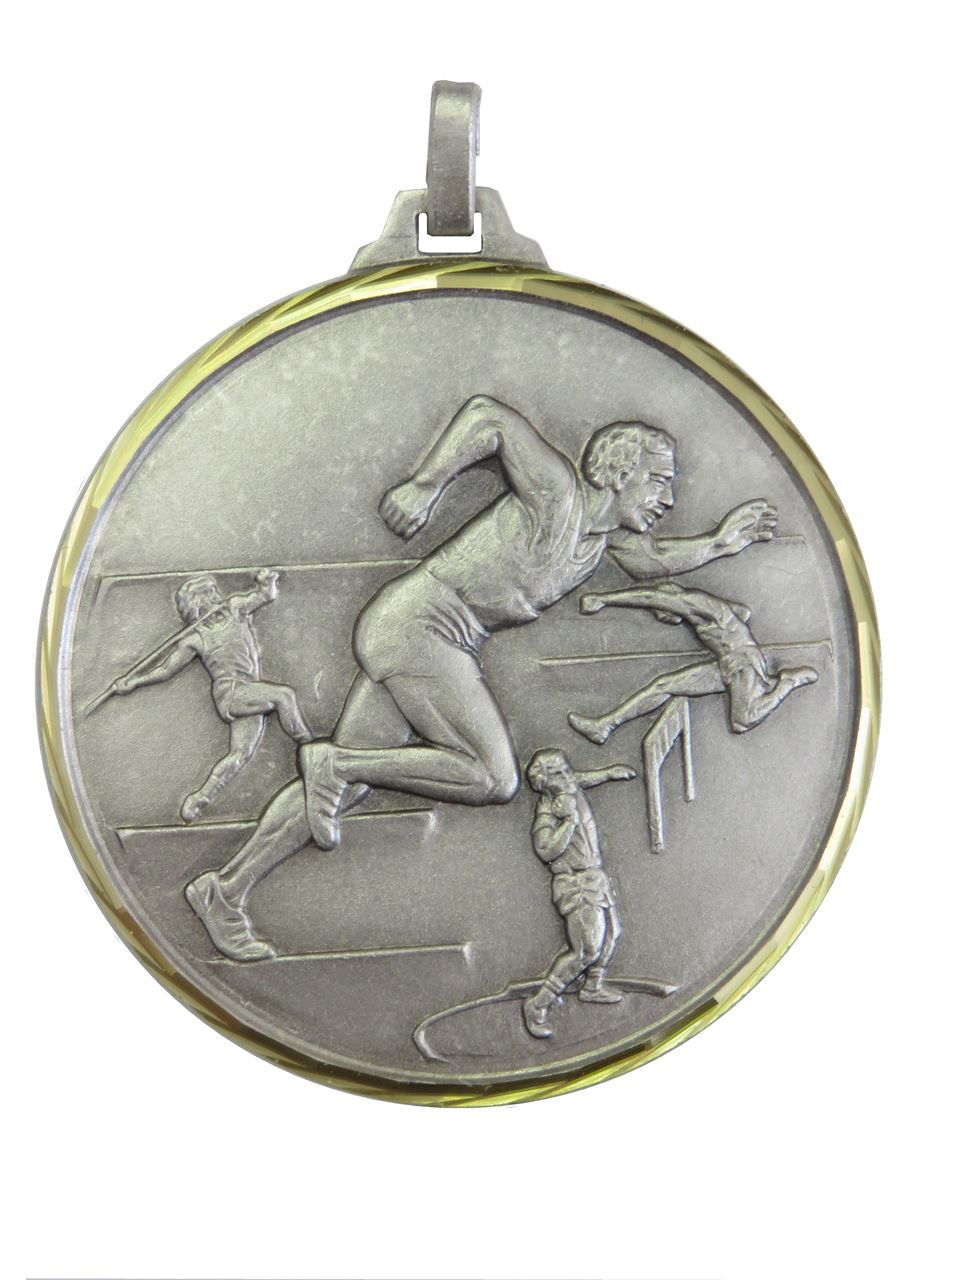 Silver Faceted Track & Field Medal (size: 52mm) - 370/52S